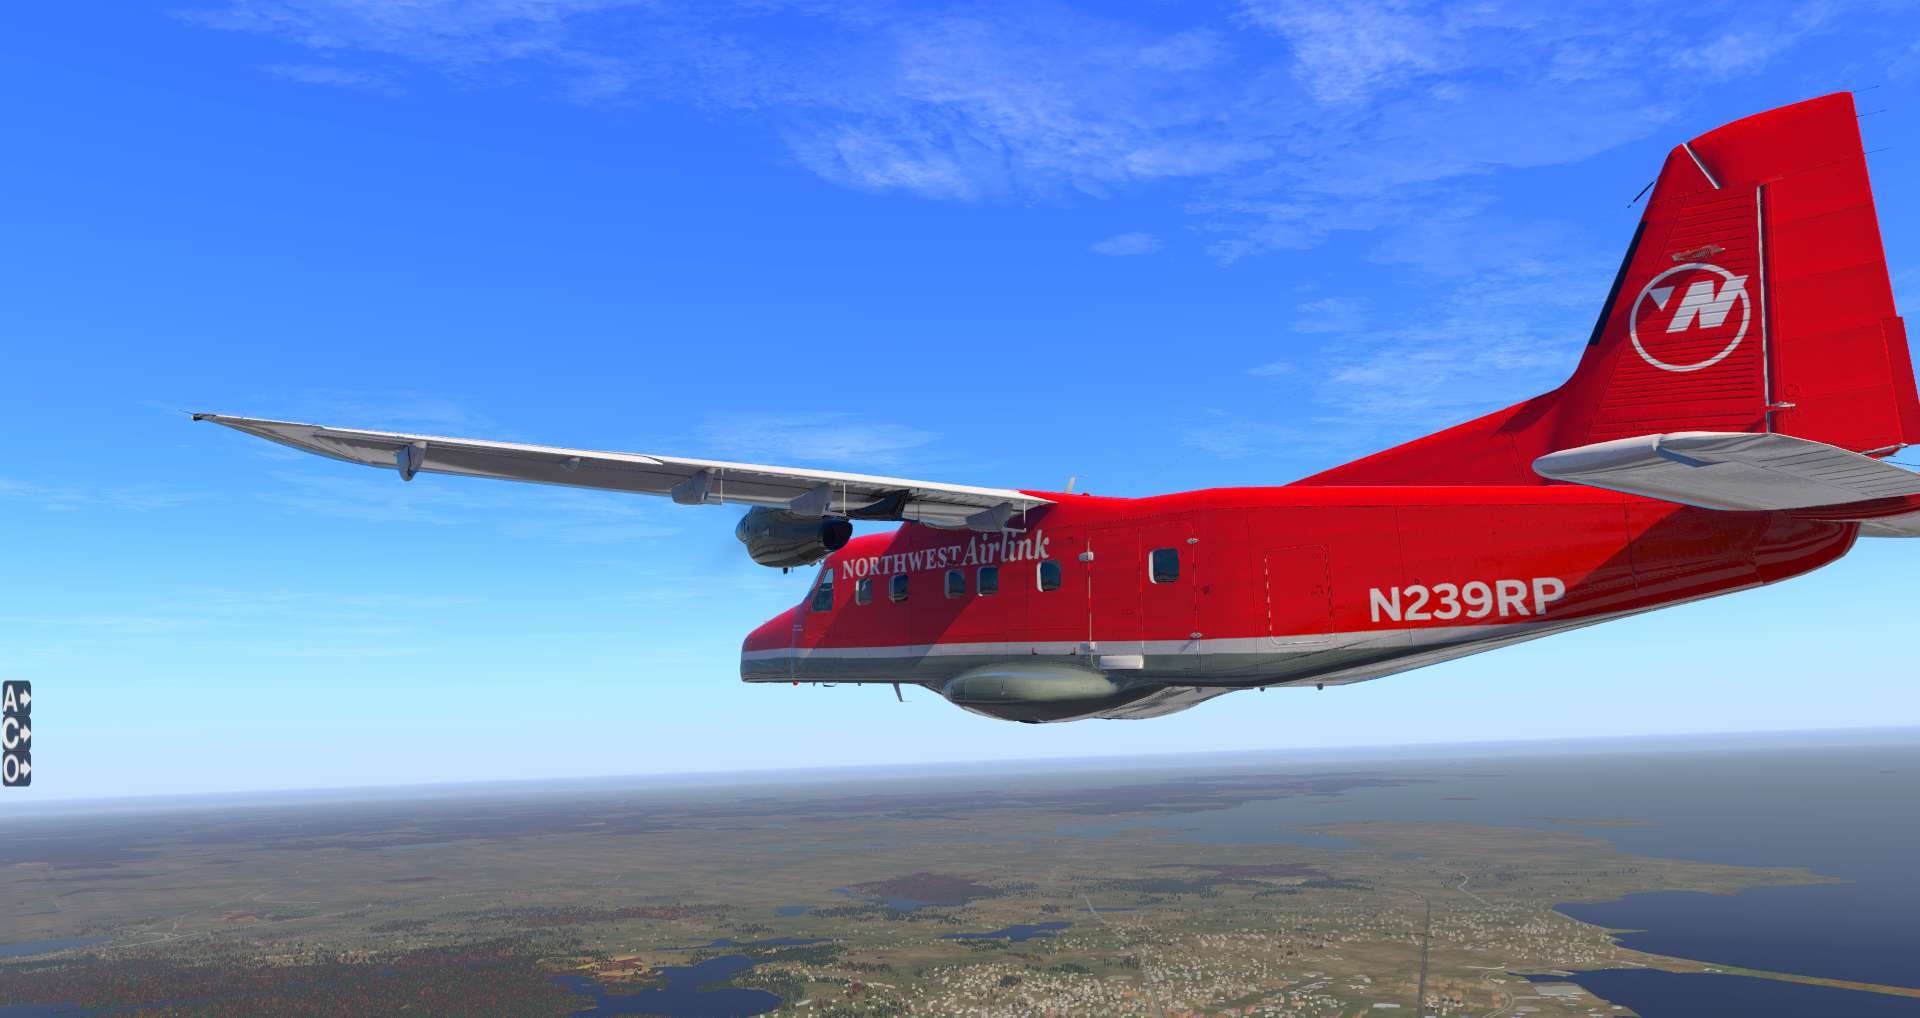 Carenado Dornier Do228 Northwest Airlink - Carenado Paints - X-Plane